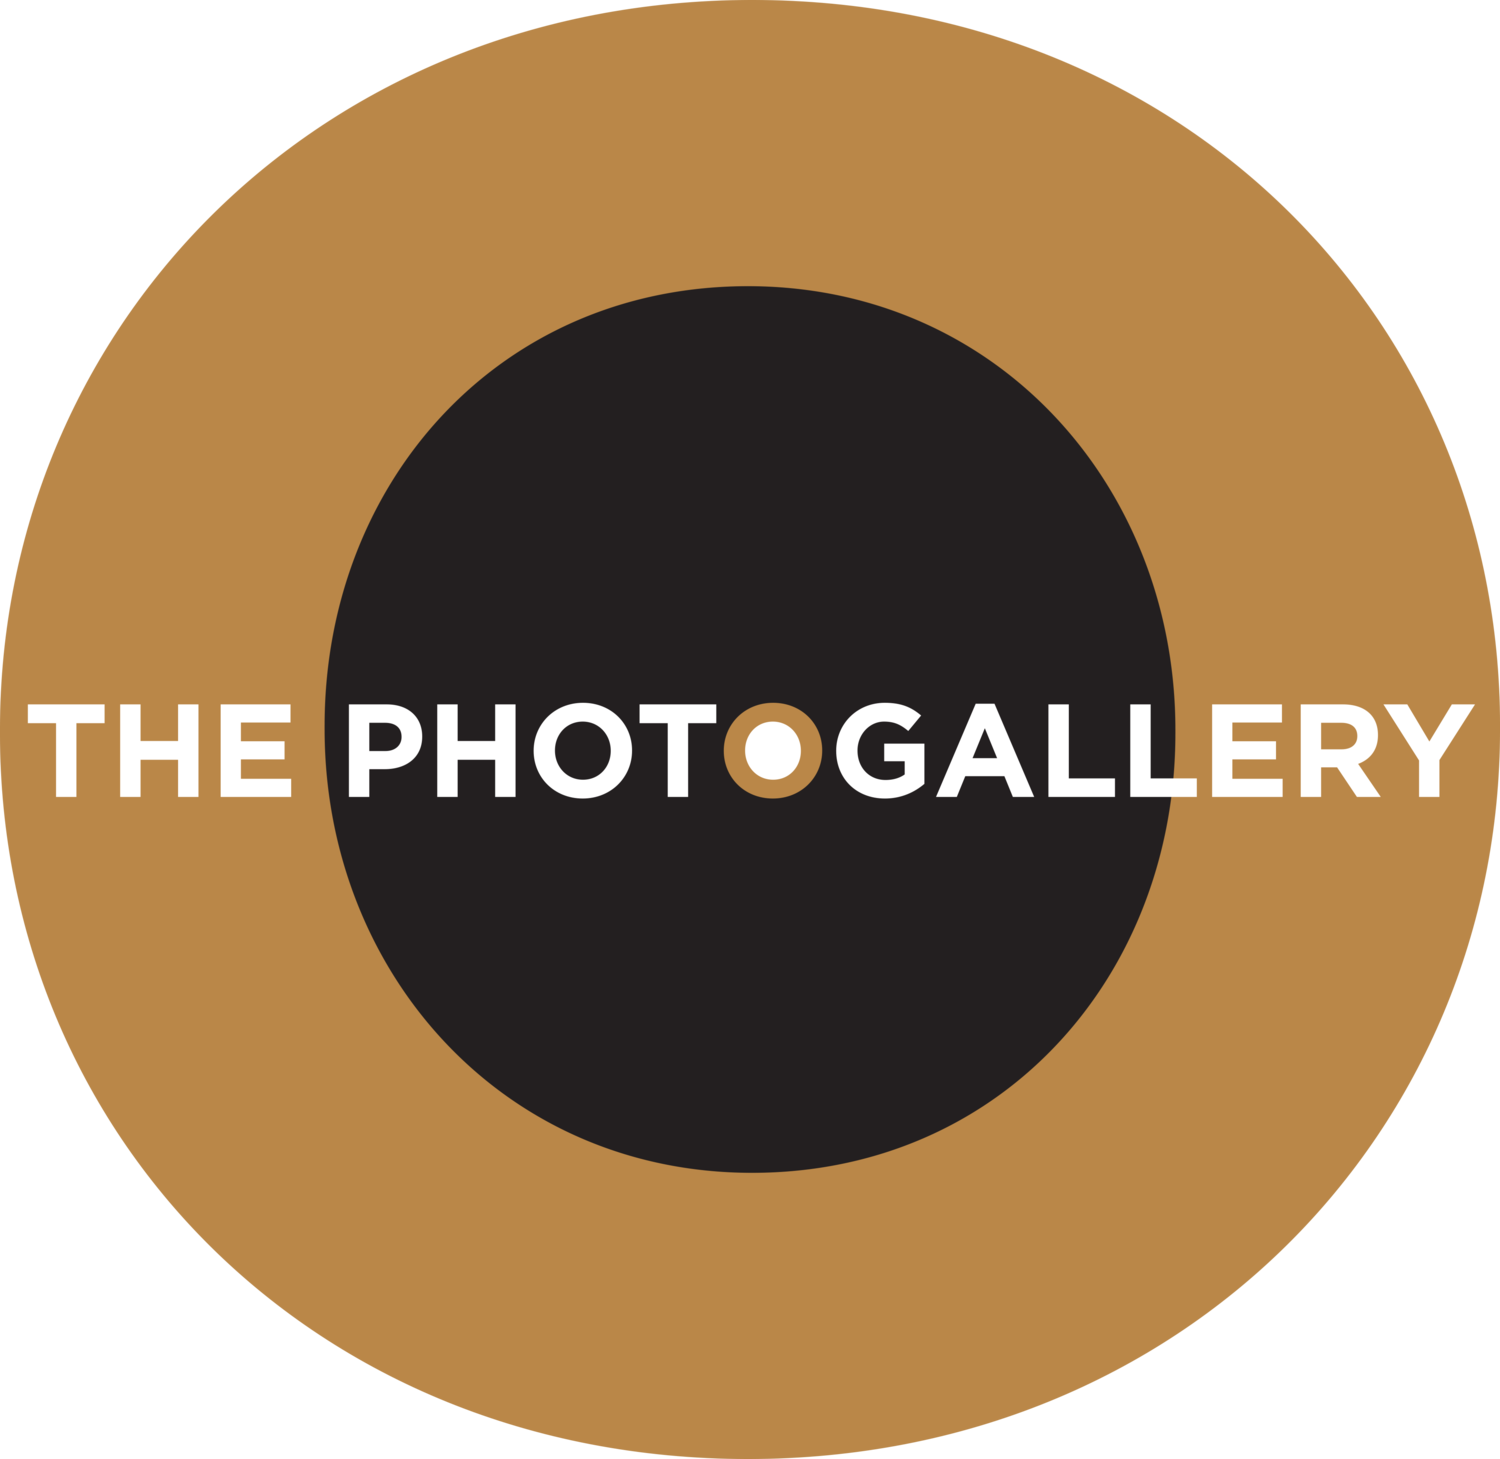 THE PHOTOGALLERY